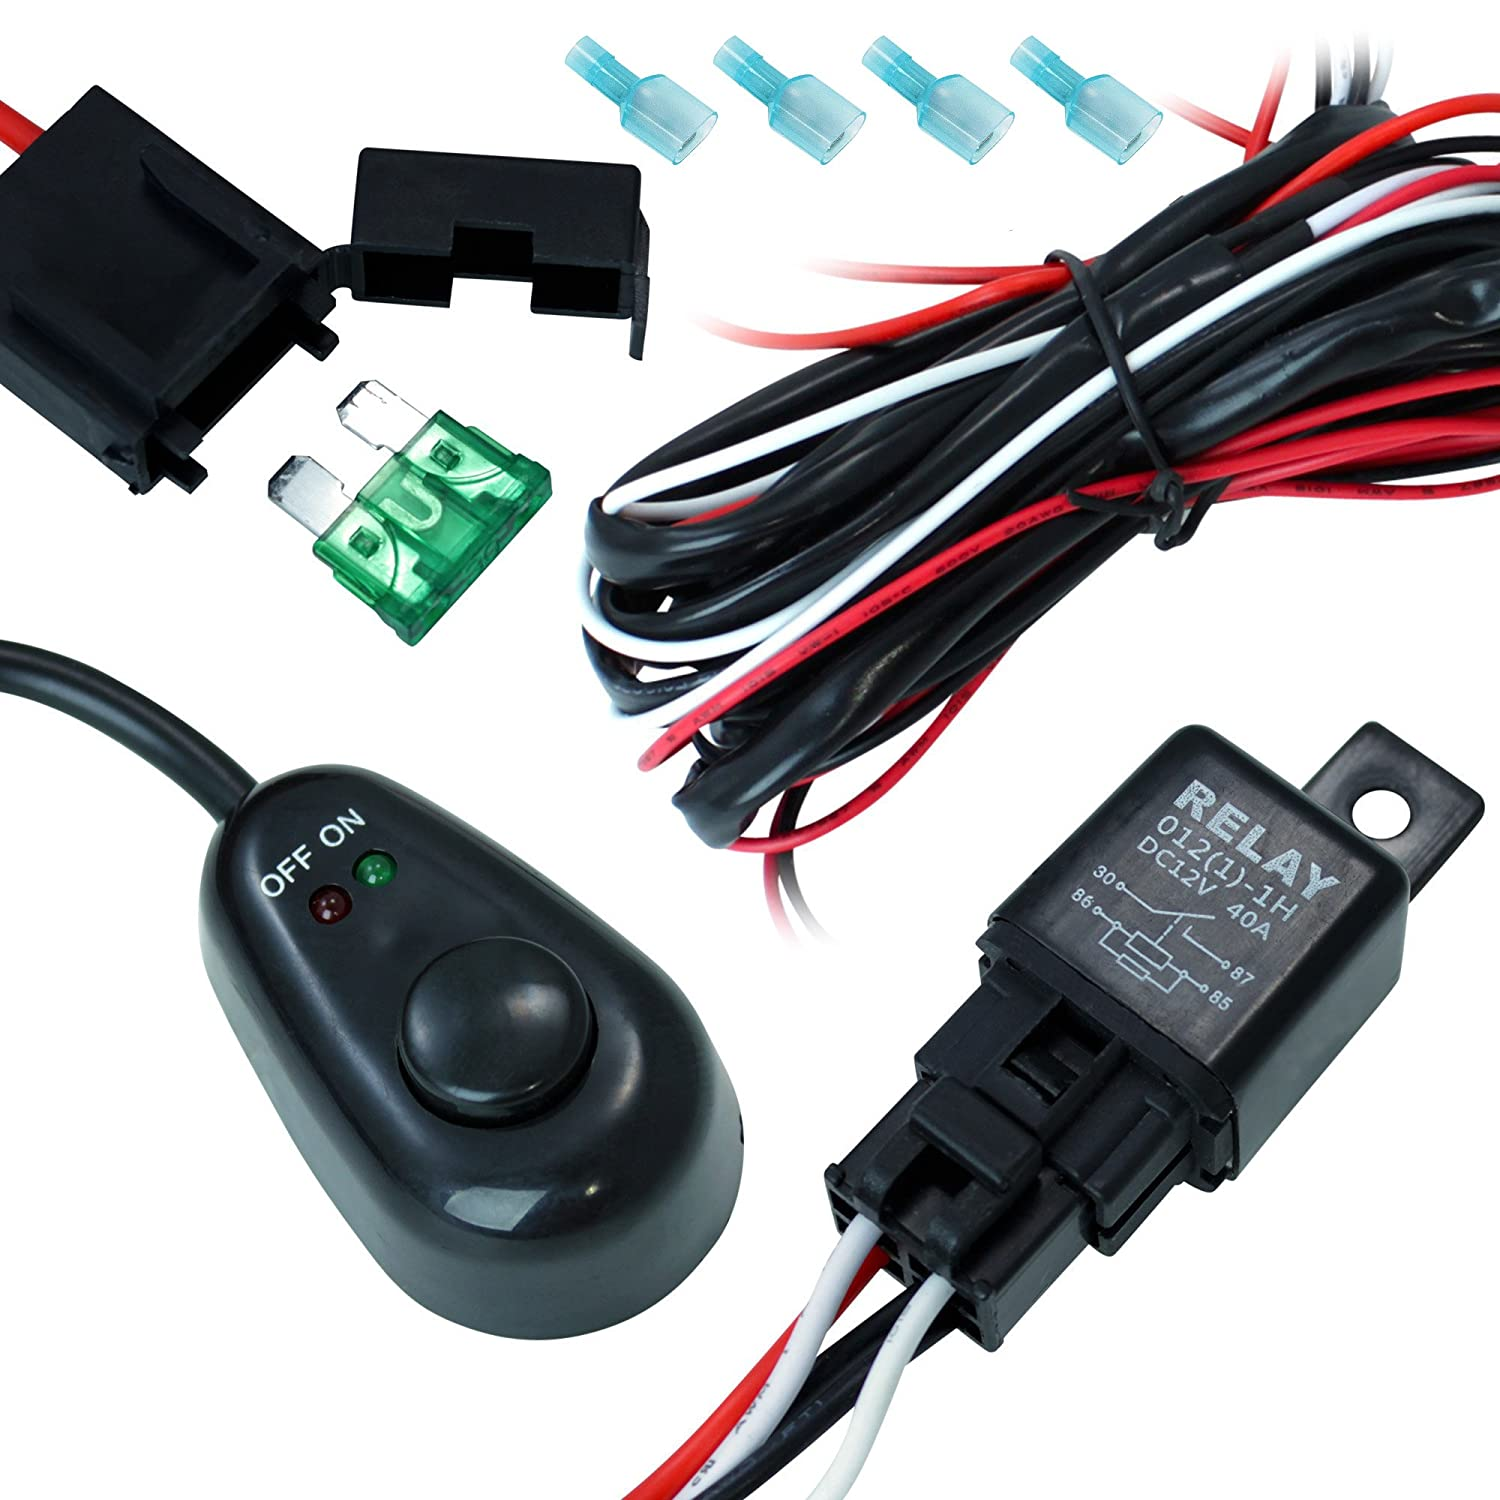 8160vxJfFvL._SL1500_ amazon com dt moto™ off road atv jeep led light bar wiring off road wiring harness at readyjetset.co